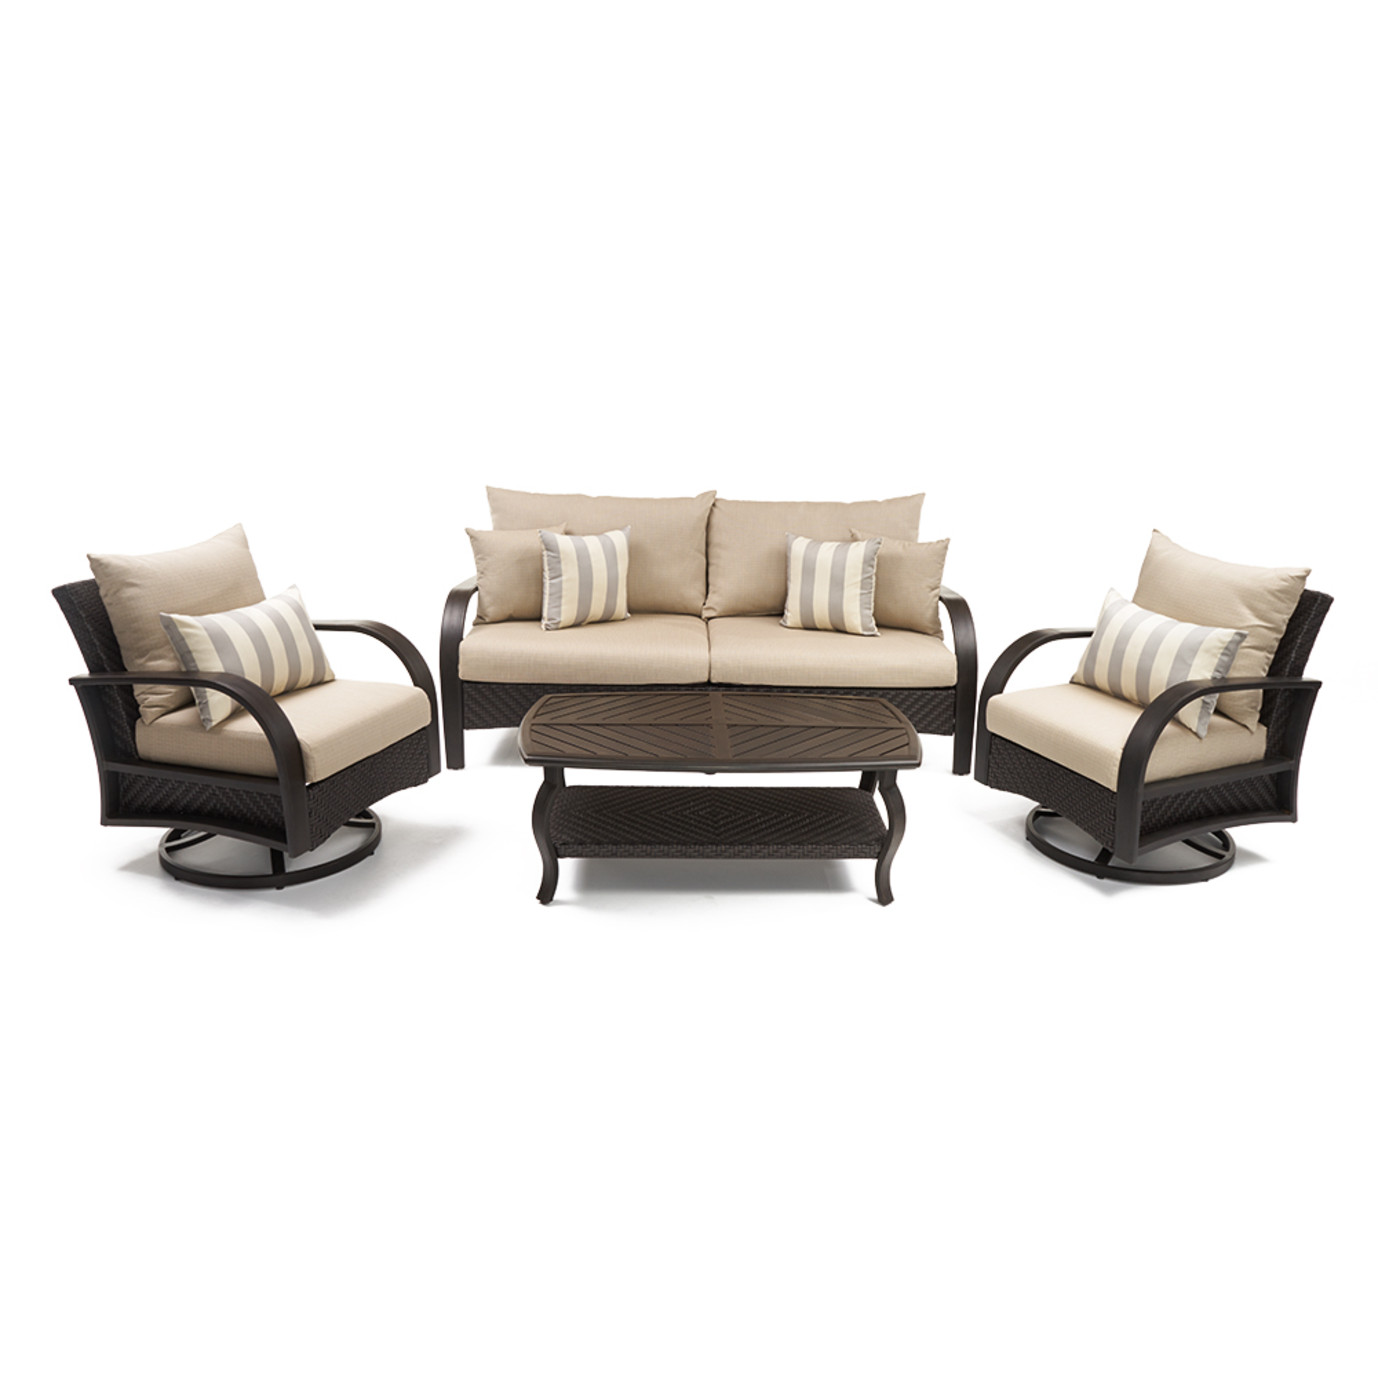 Barcelo™ 4pc Motion Club & Sofa Set - Slate Gray